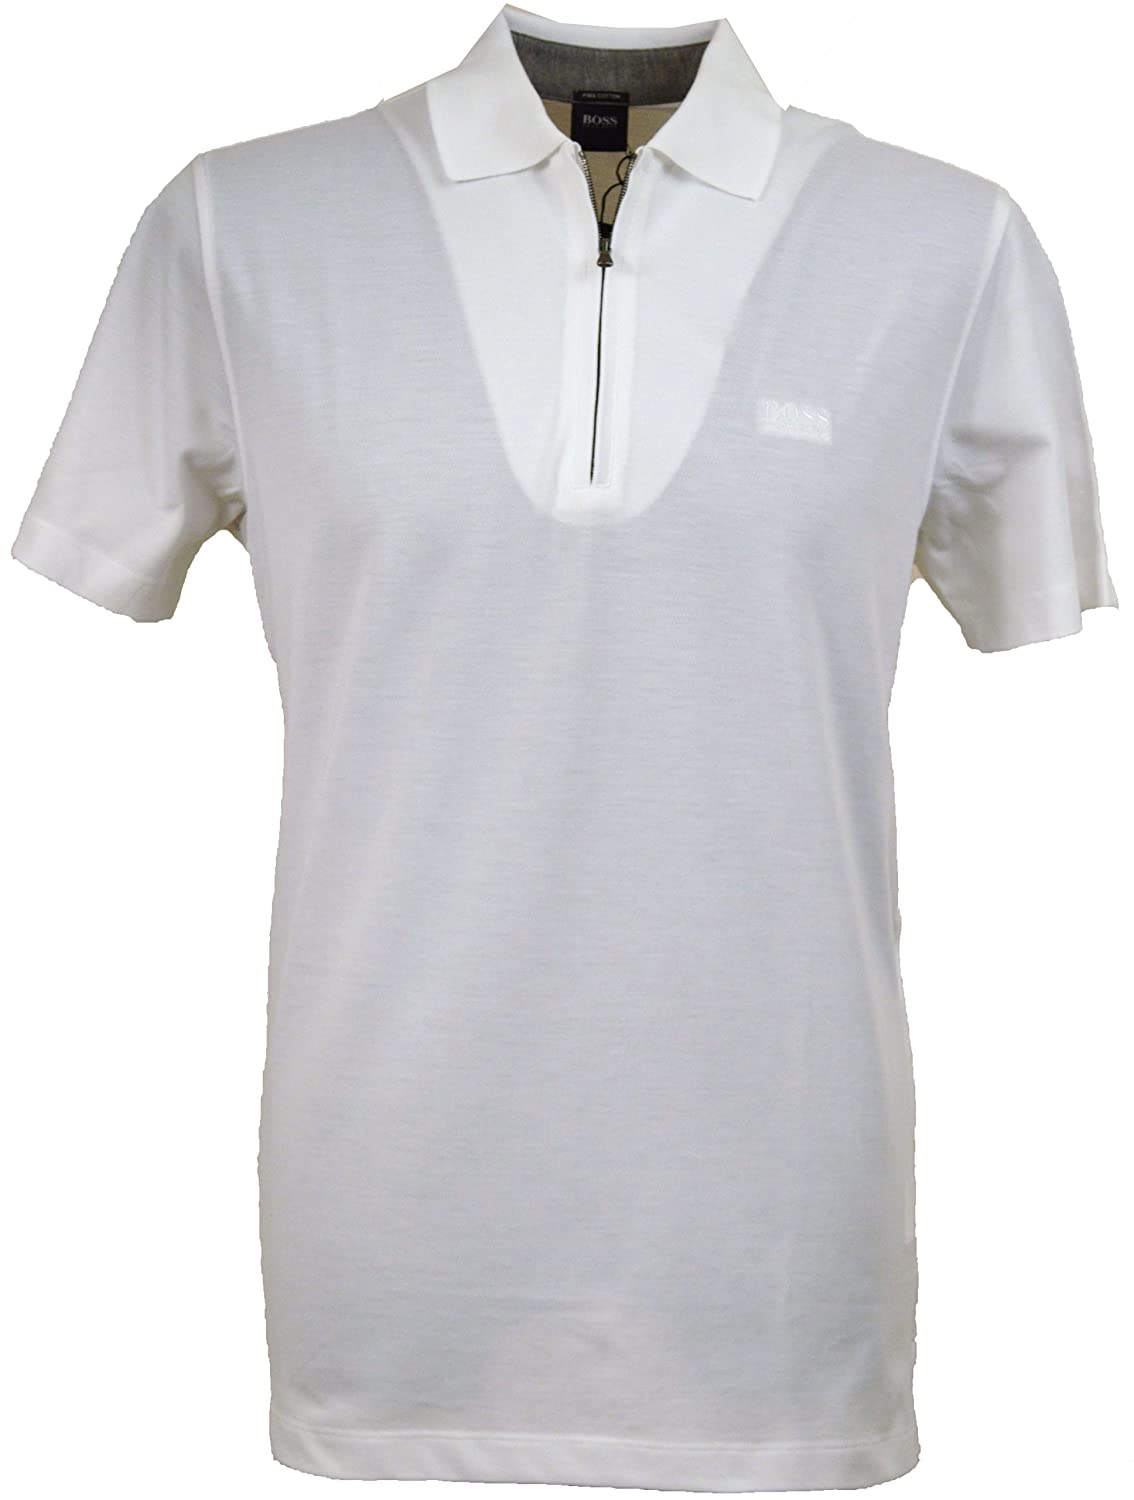 fa3d7ef54 Hugo Boss Polo Shirts Sale Uk – EDGE Engineering and Consulting Limited